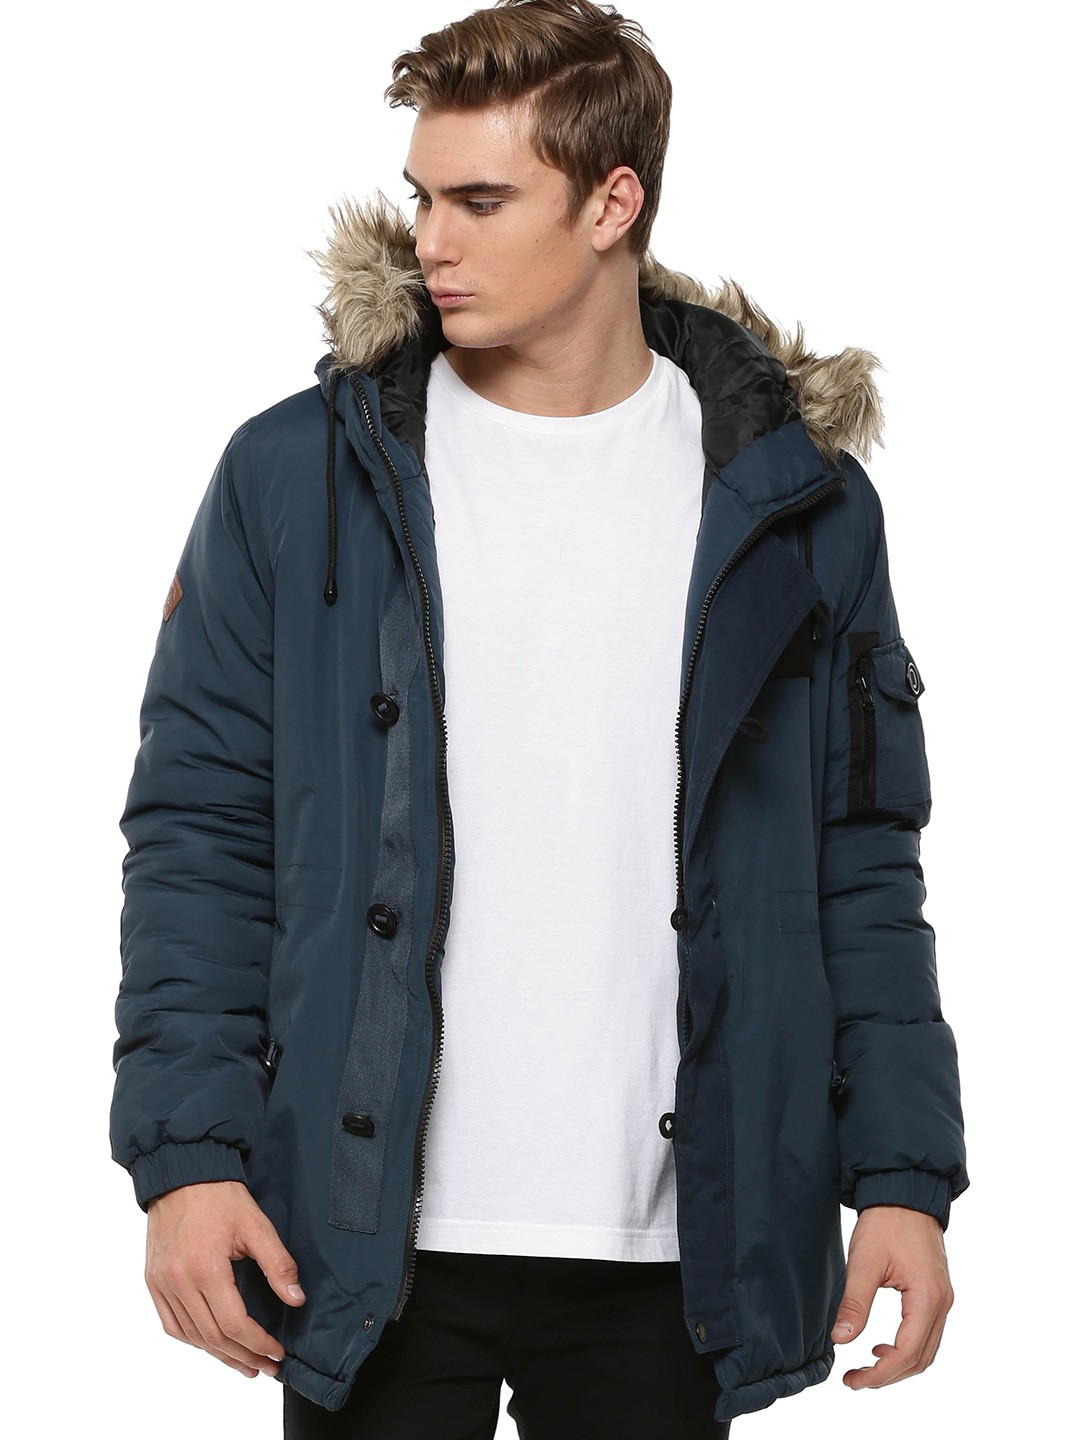 Buy Mens Parka Jacket | Fit Jacket